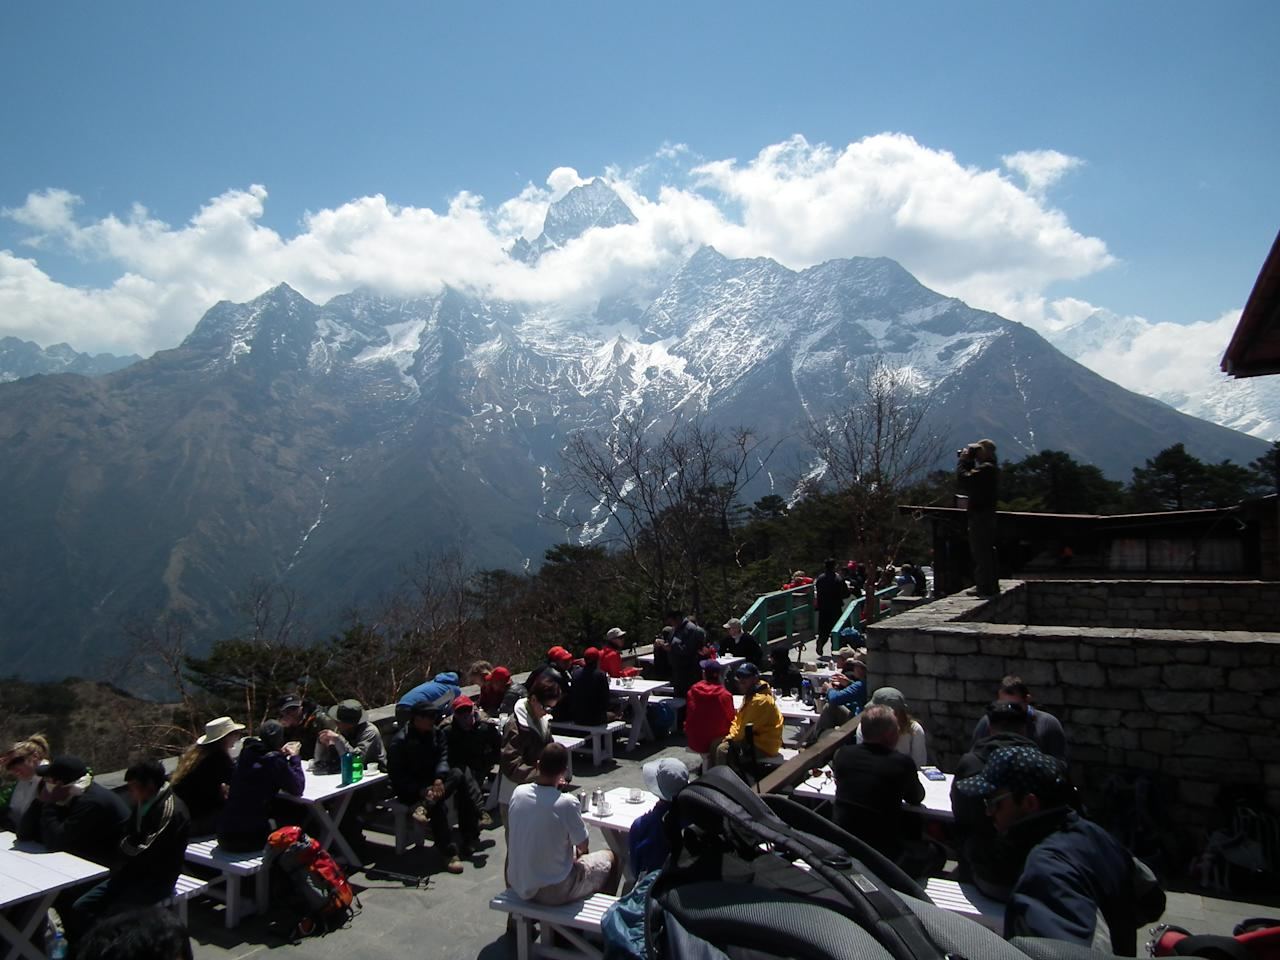 Hotel Everest View in the Himalayas